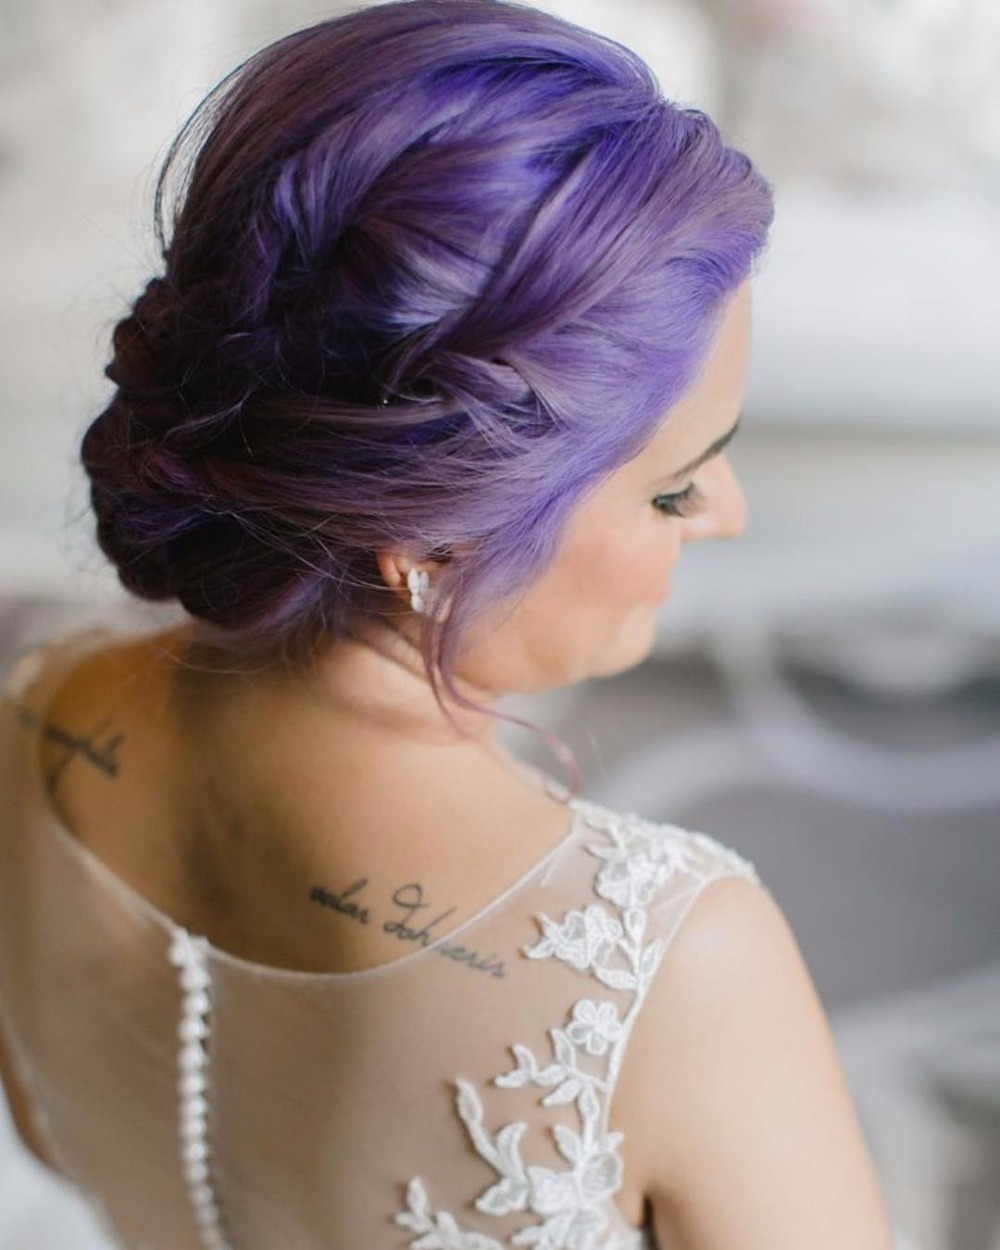 Ultra Violet Weddings Are Coming in Haute